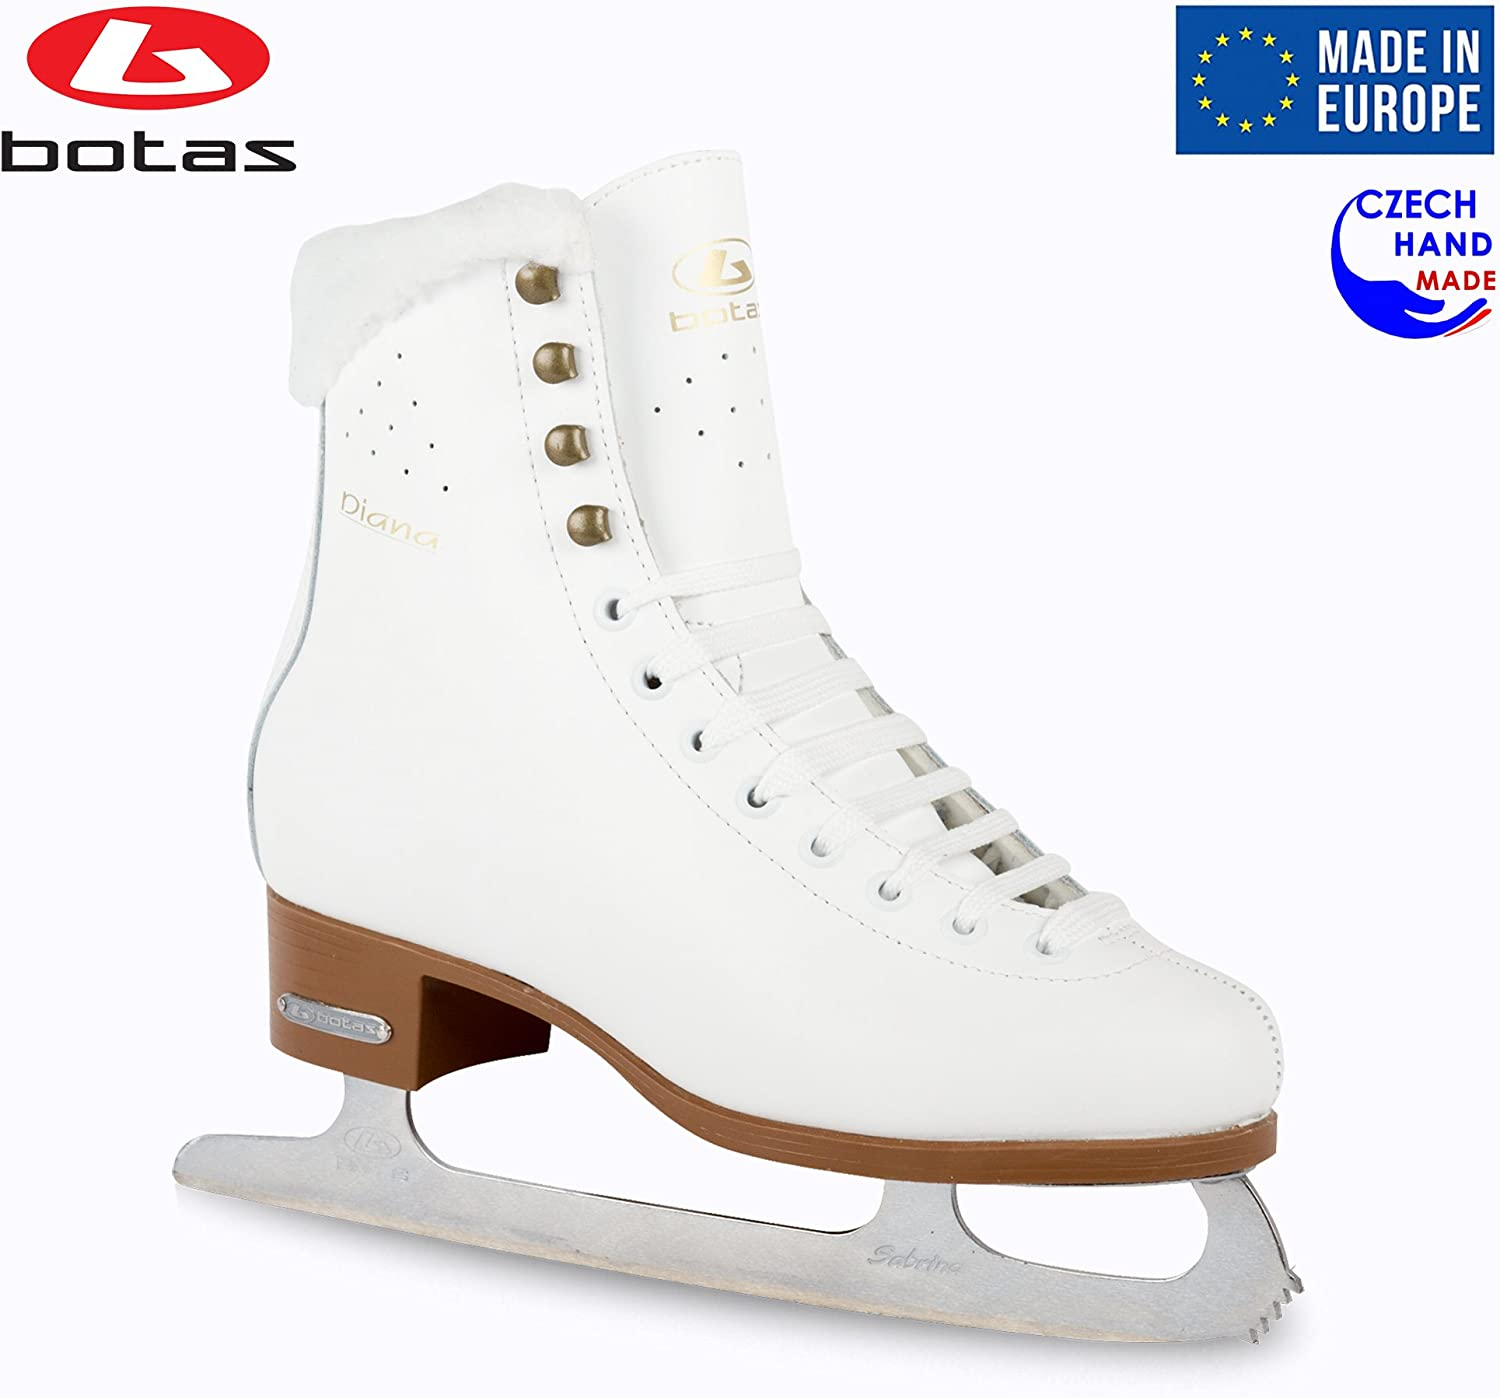 Botas - Model: Diana/Made in Europe (Czech Republic) / Figure Ice Skates for Women, Girls, Kids/Sabrina Blades/White Color